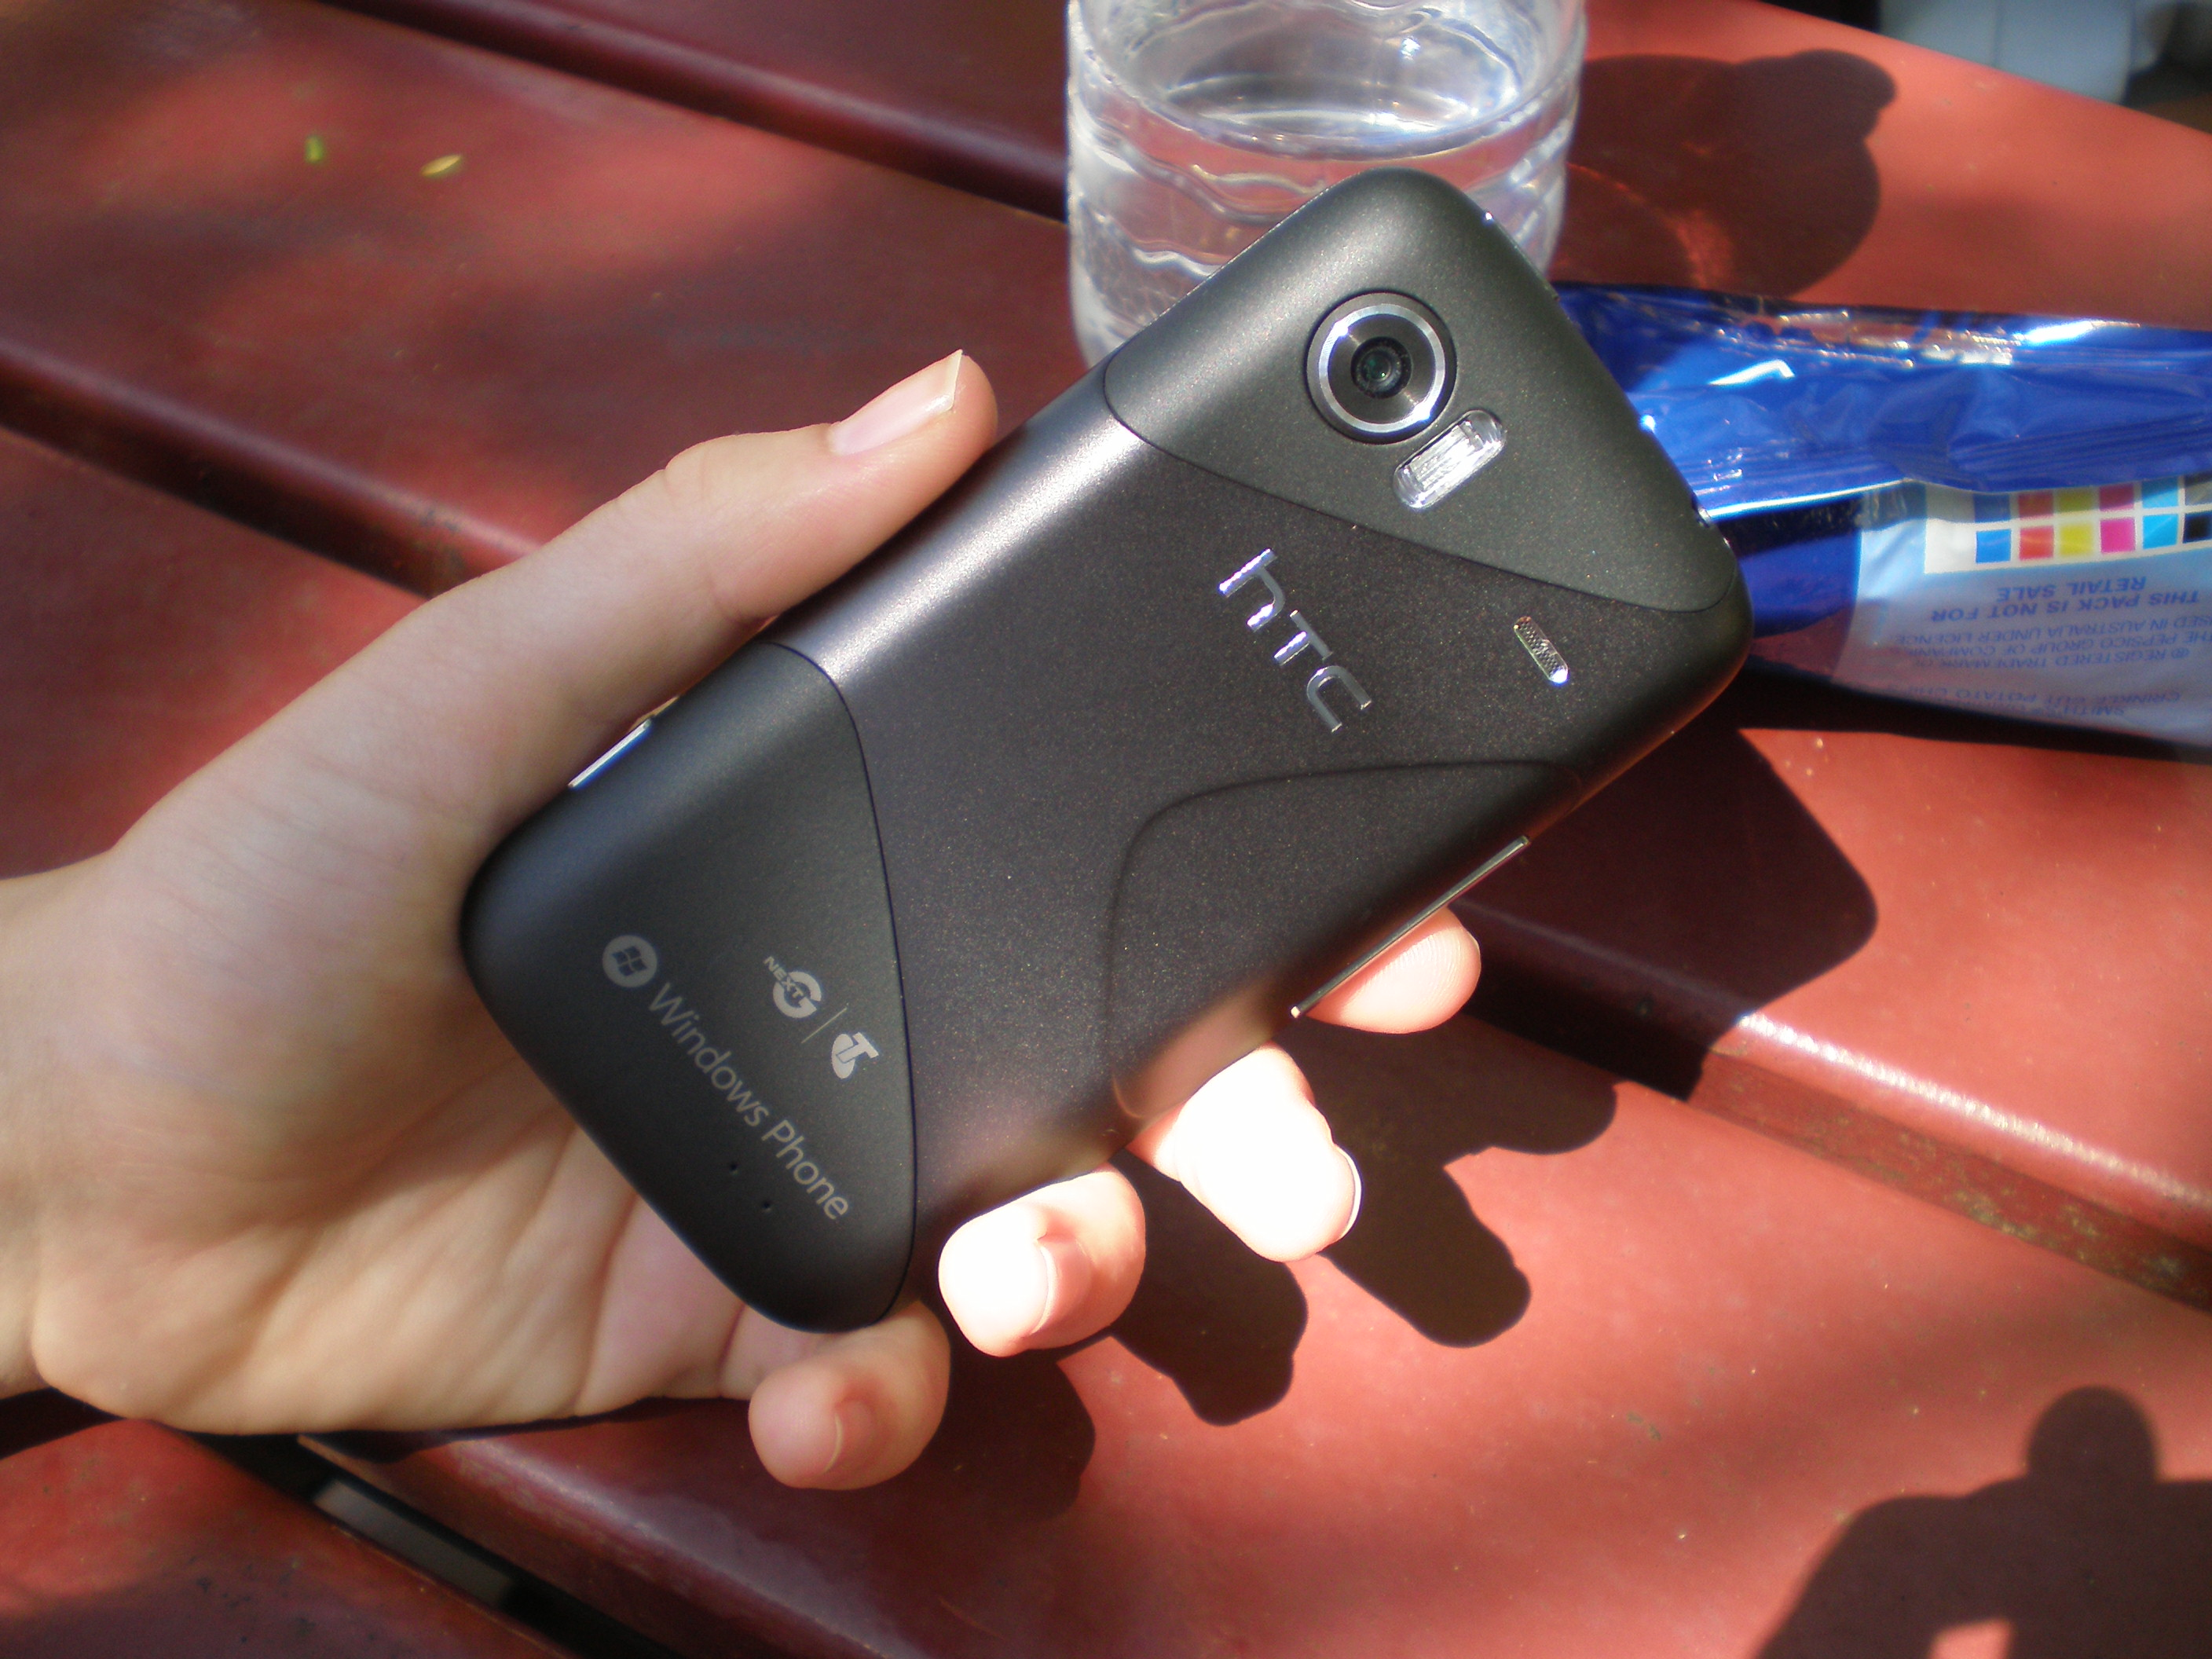 A Windows Phone 7 handset with a musical and photography focus